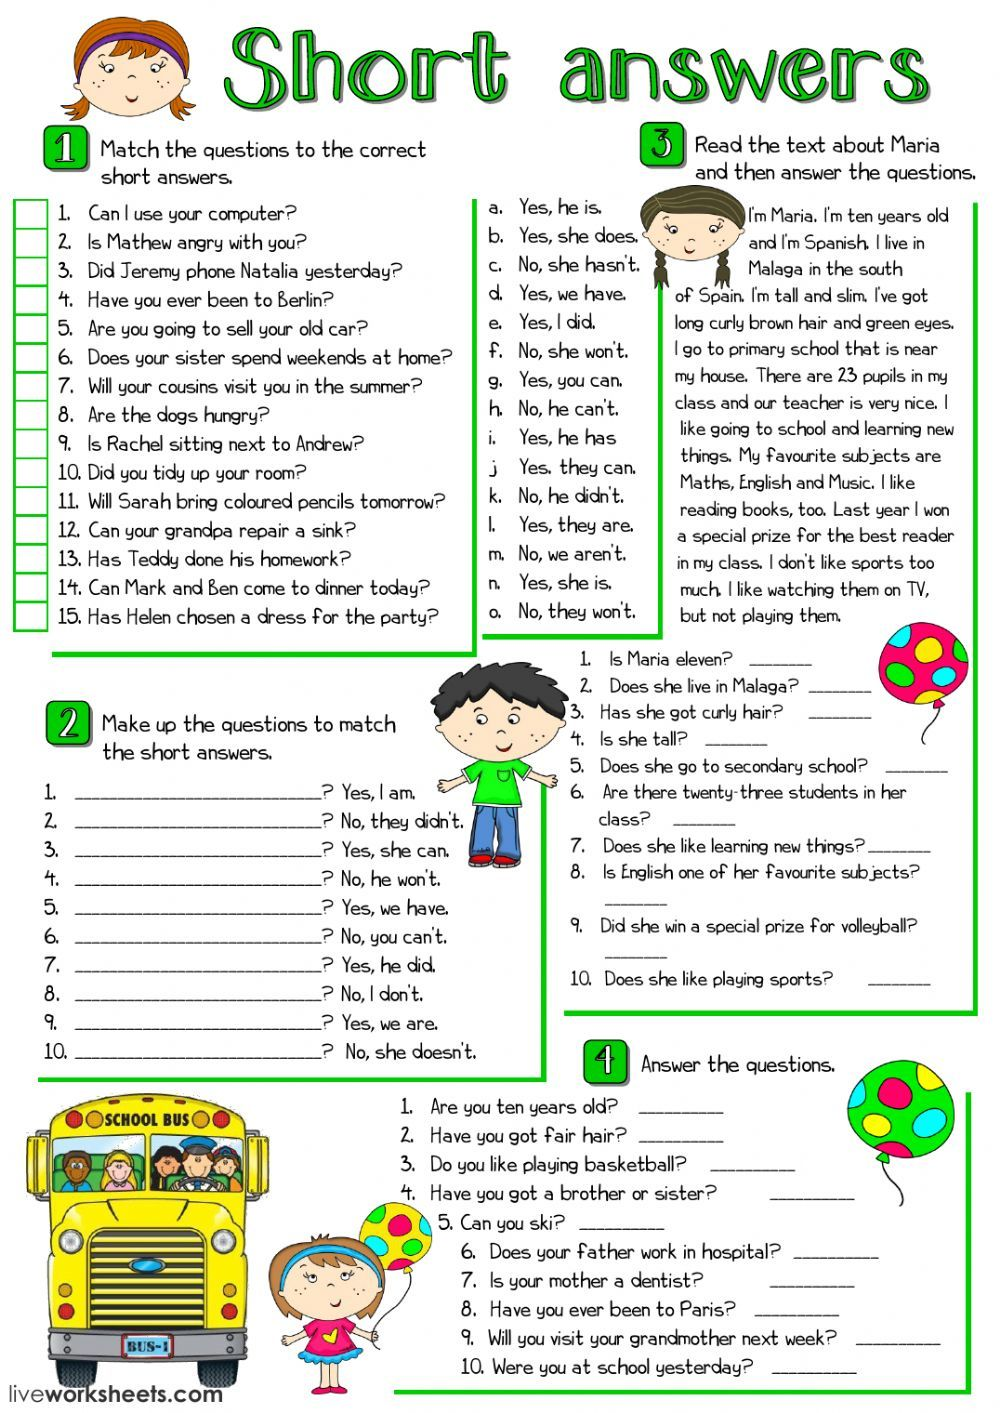 Short Answers Interactive And Downloadable Worksheet You Can Do The Exercises Online Or D Ejercicios De Ingles Comparativos En Ingles Ingles Basico Para Ninos [ 1413 x 1000 Pixel ]